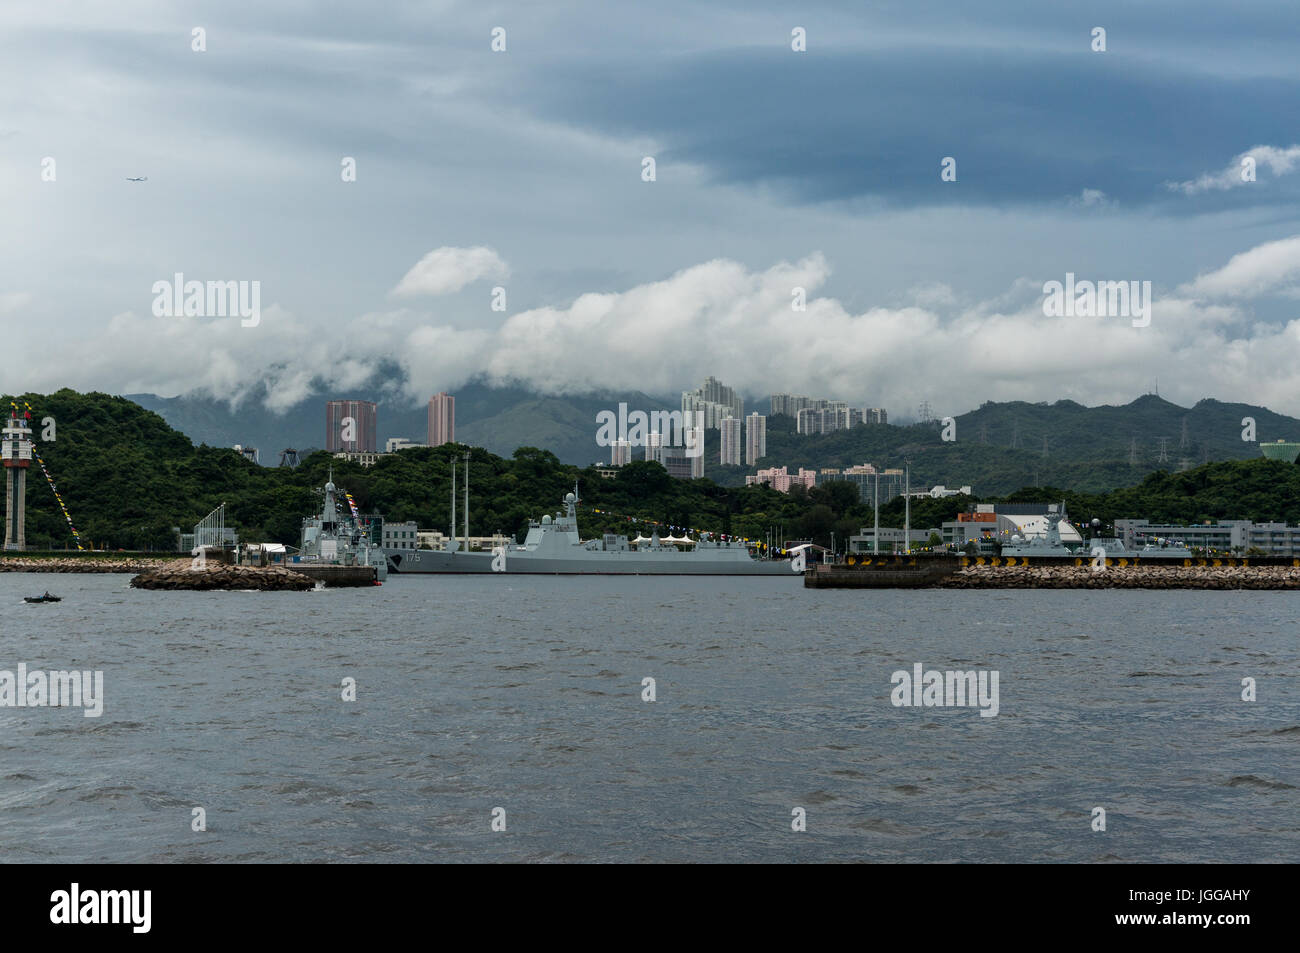 Chinese battleships (which accompanied aircraft carrier CNS Liaoning) docked at PLA military base at Stonecutters Stock Photo